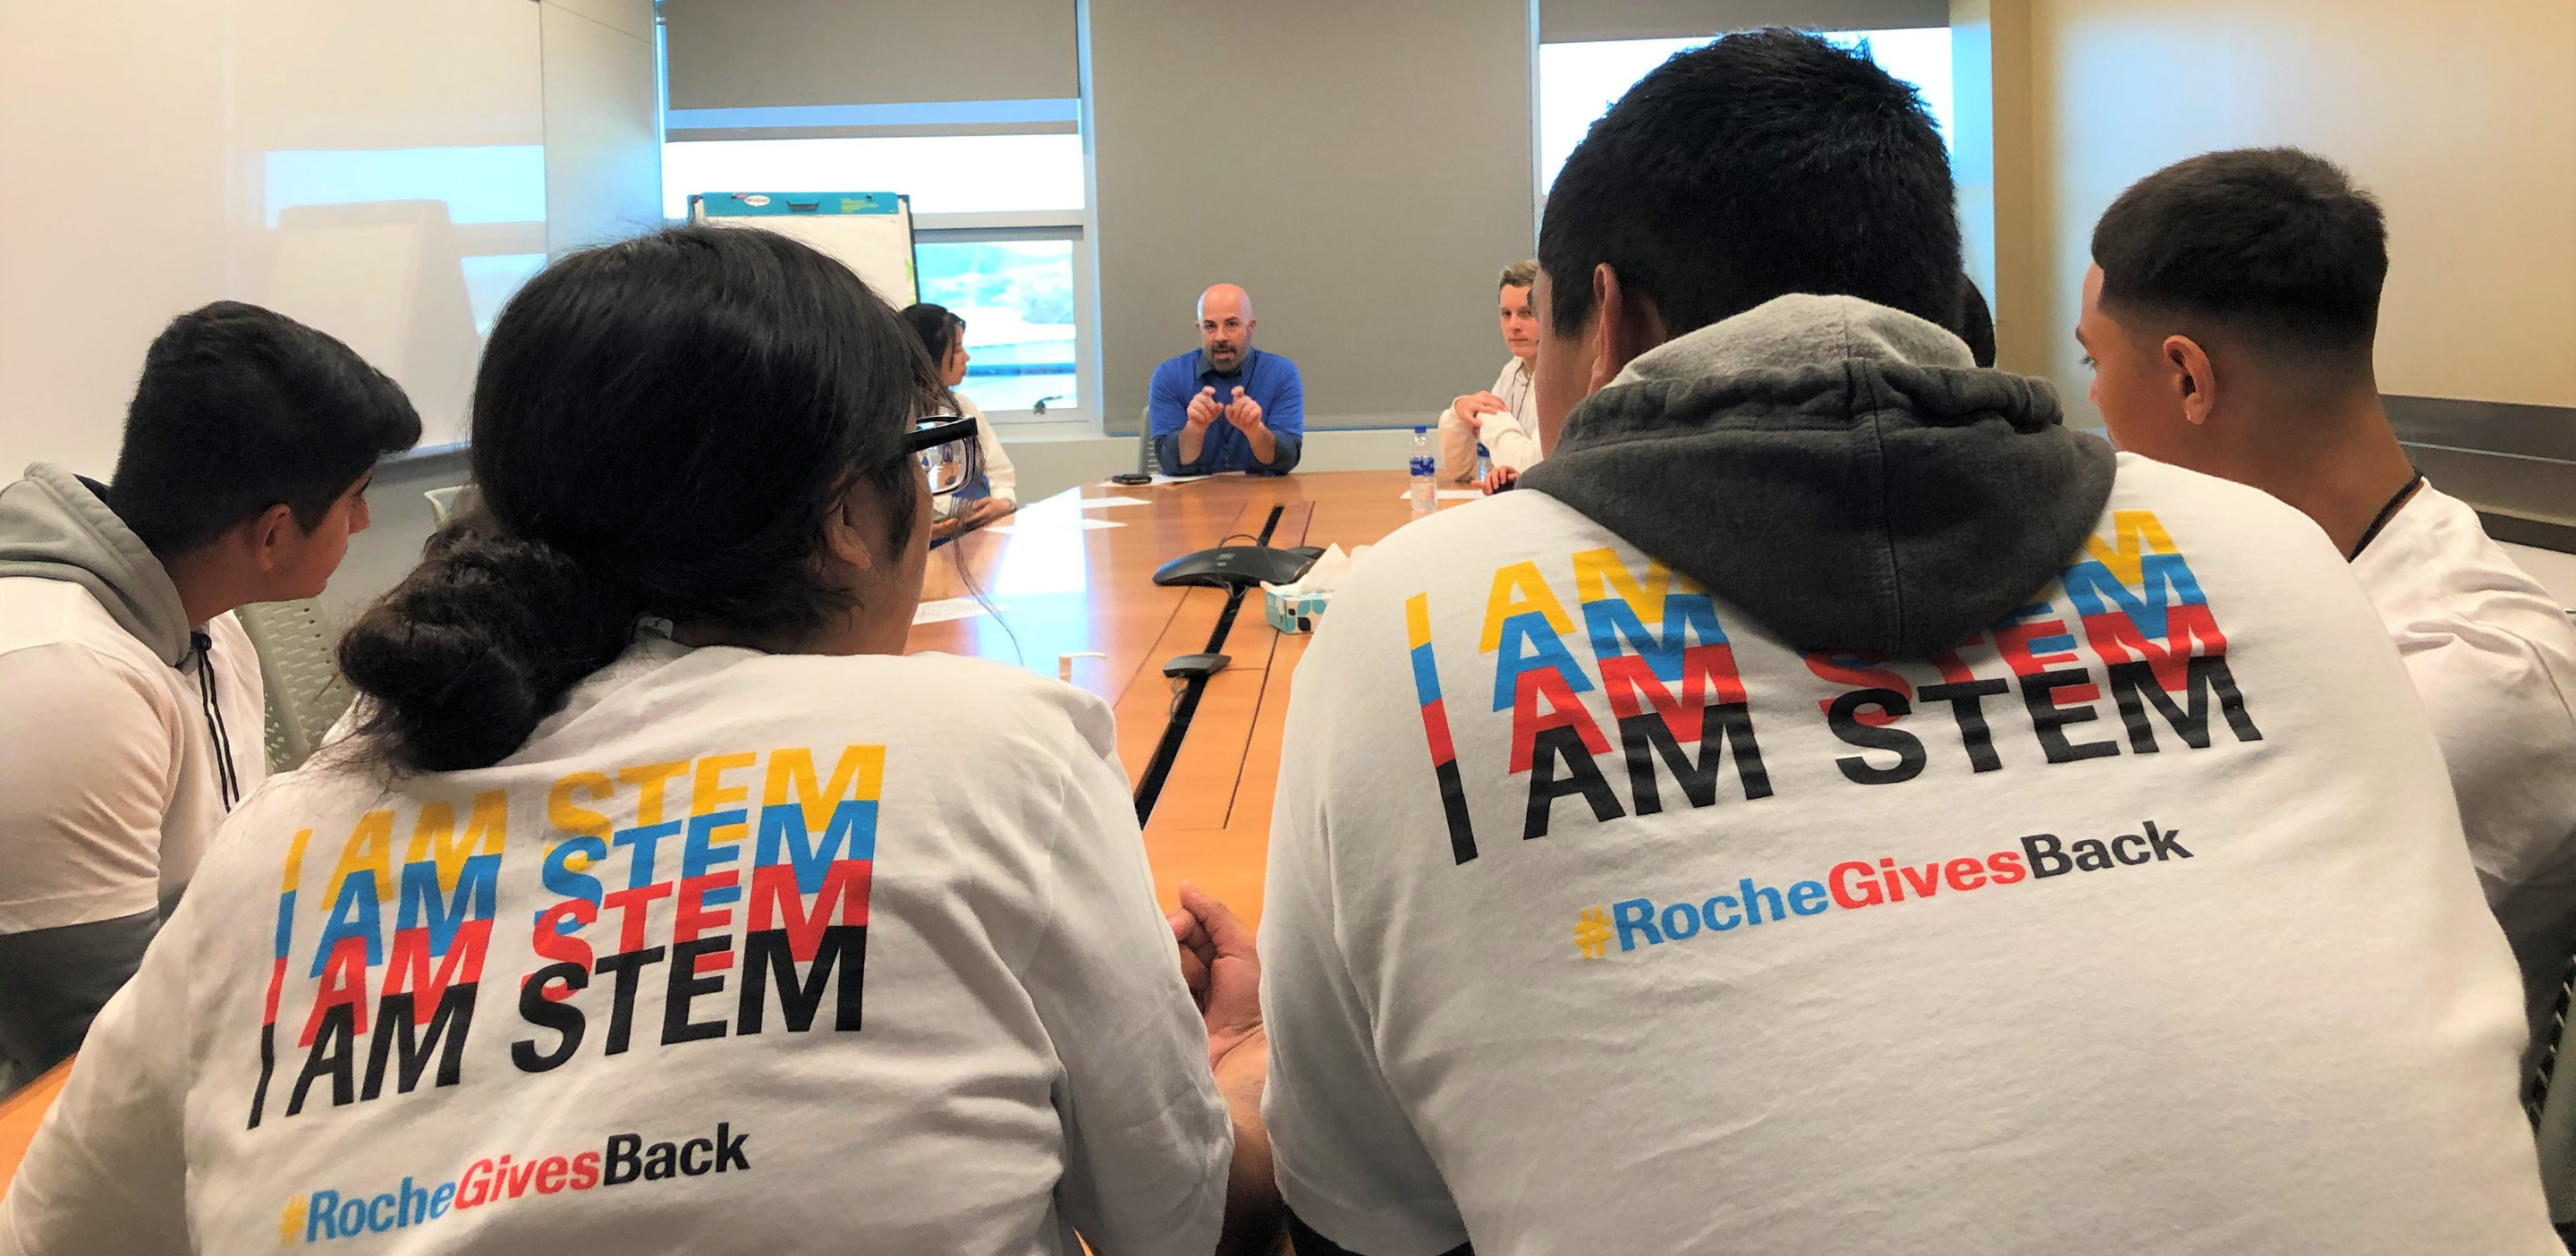 STEM career day at Roche